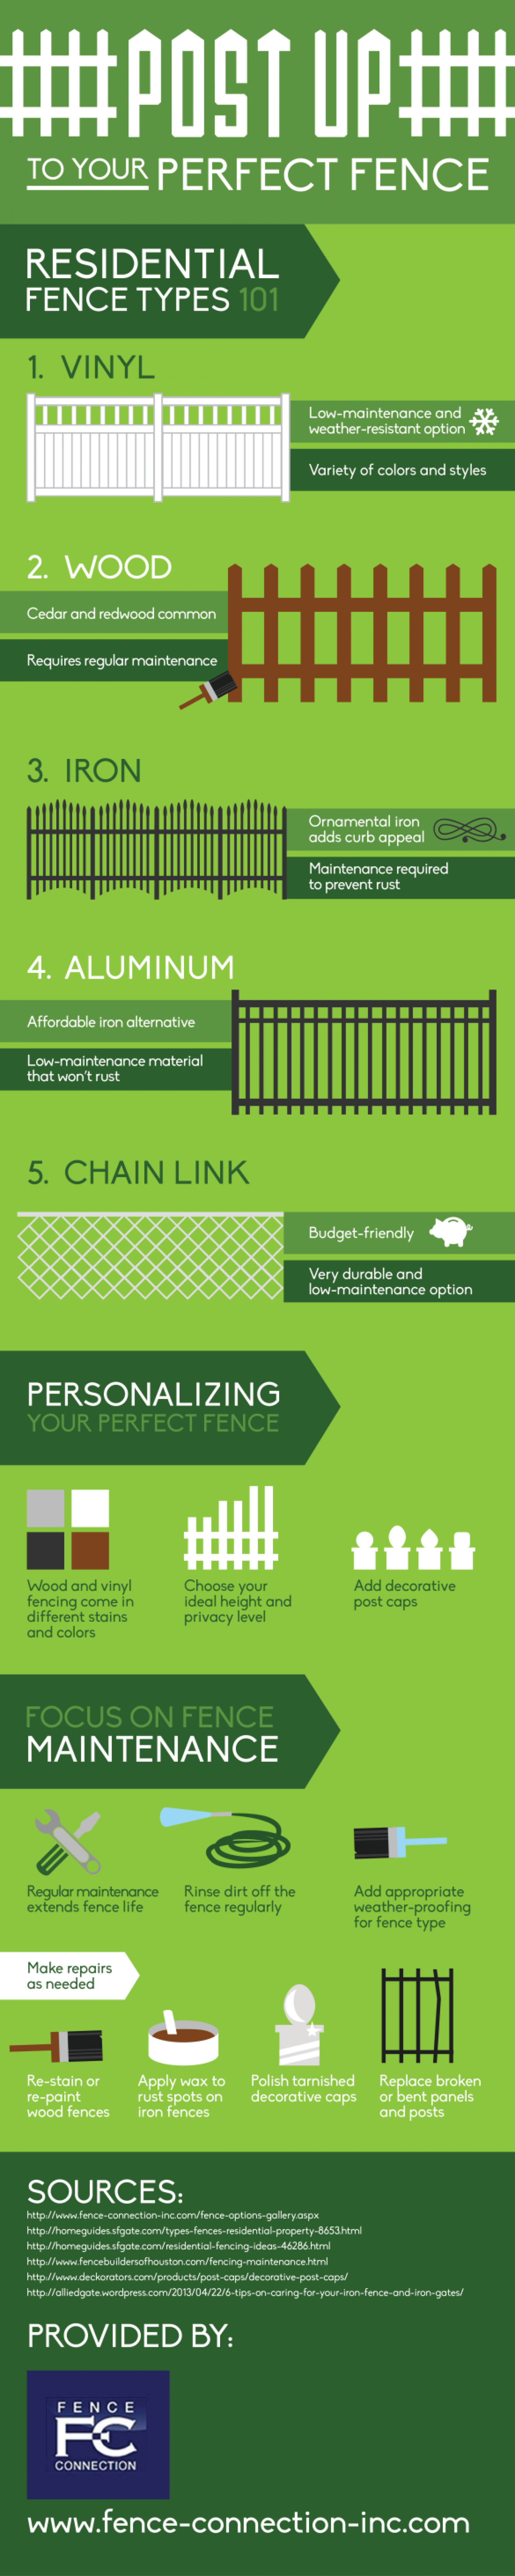 Post Up to Your Perfect Fence Infographic